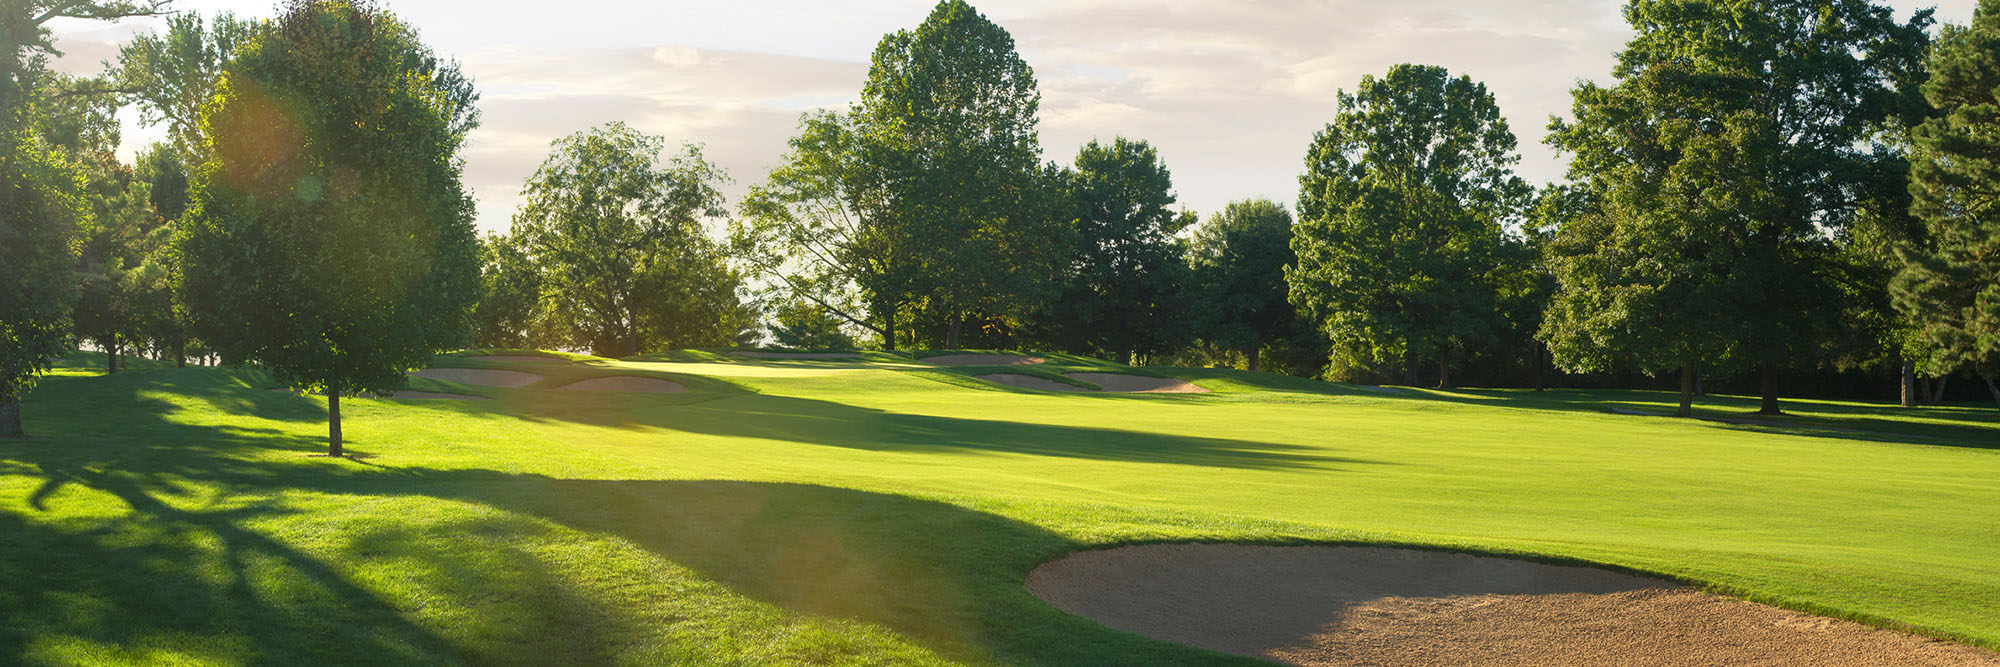 Golf Course Image - Hickory Hills No. 13